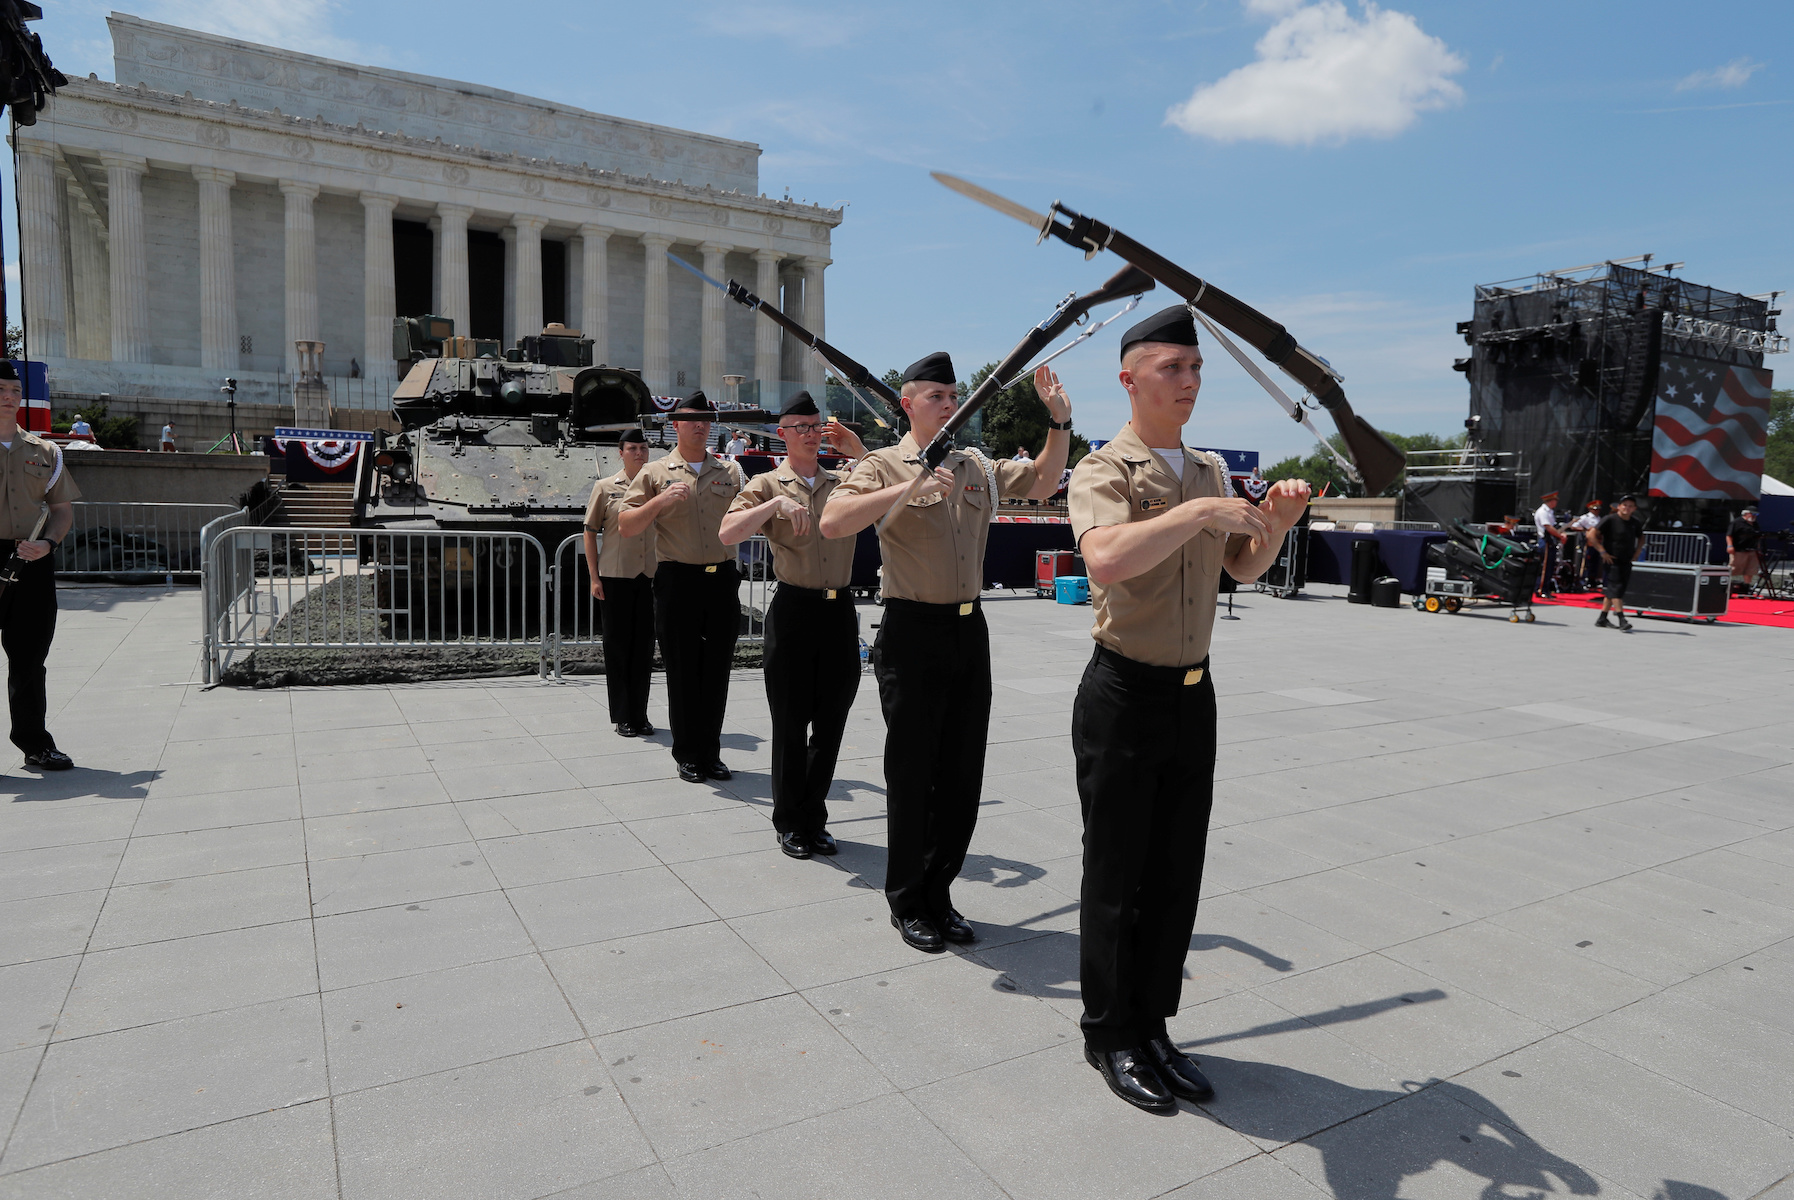 U.S. Navy Ceremonial Guard rehearses as July Fourth preparations continue at the Lincoln Memorial in Washington